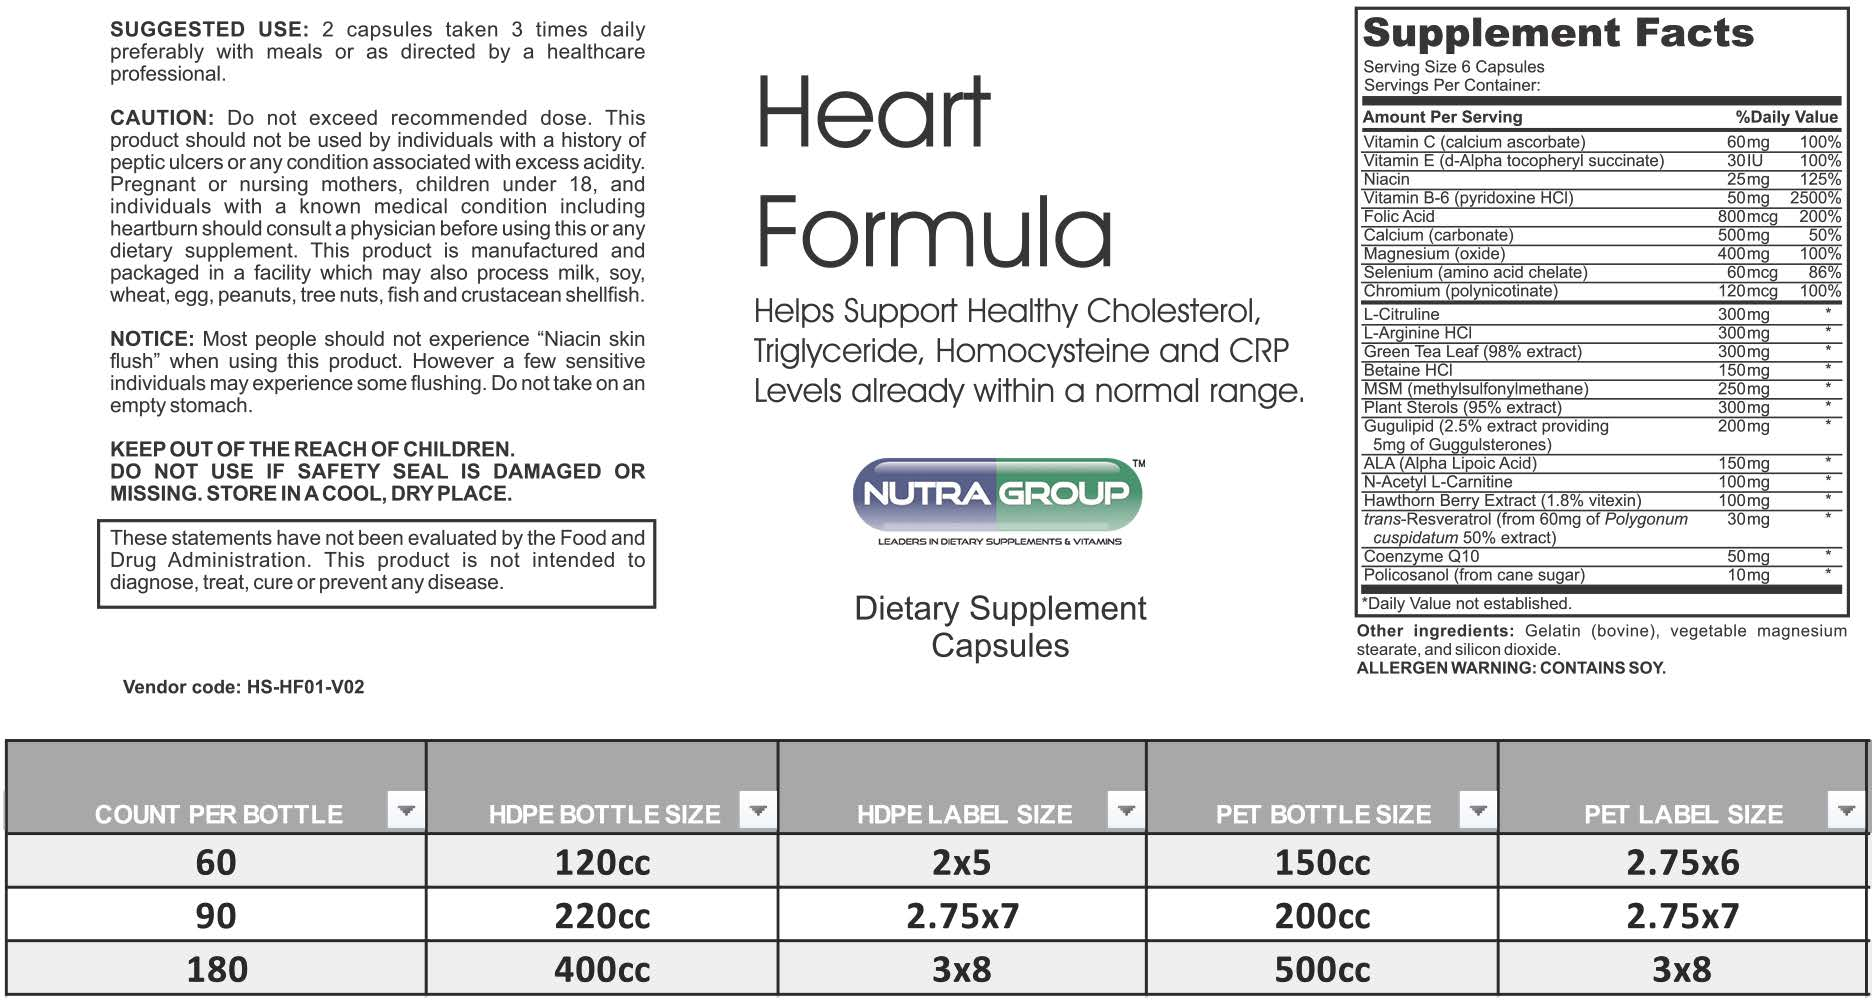 Private Label Heart Supplement